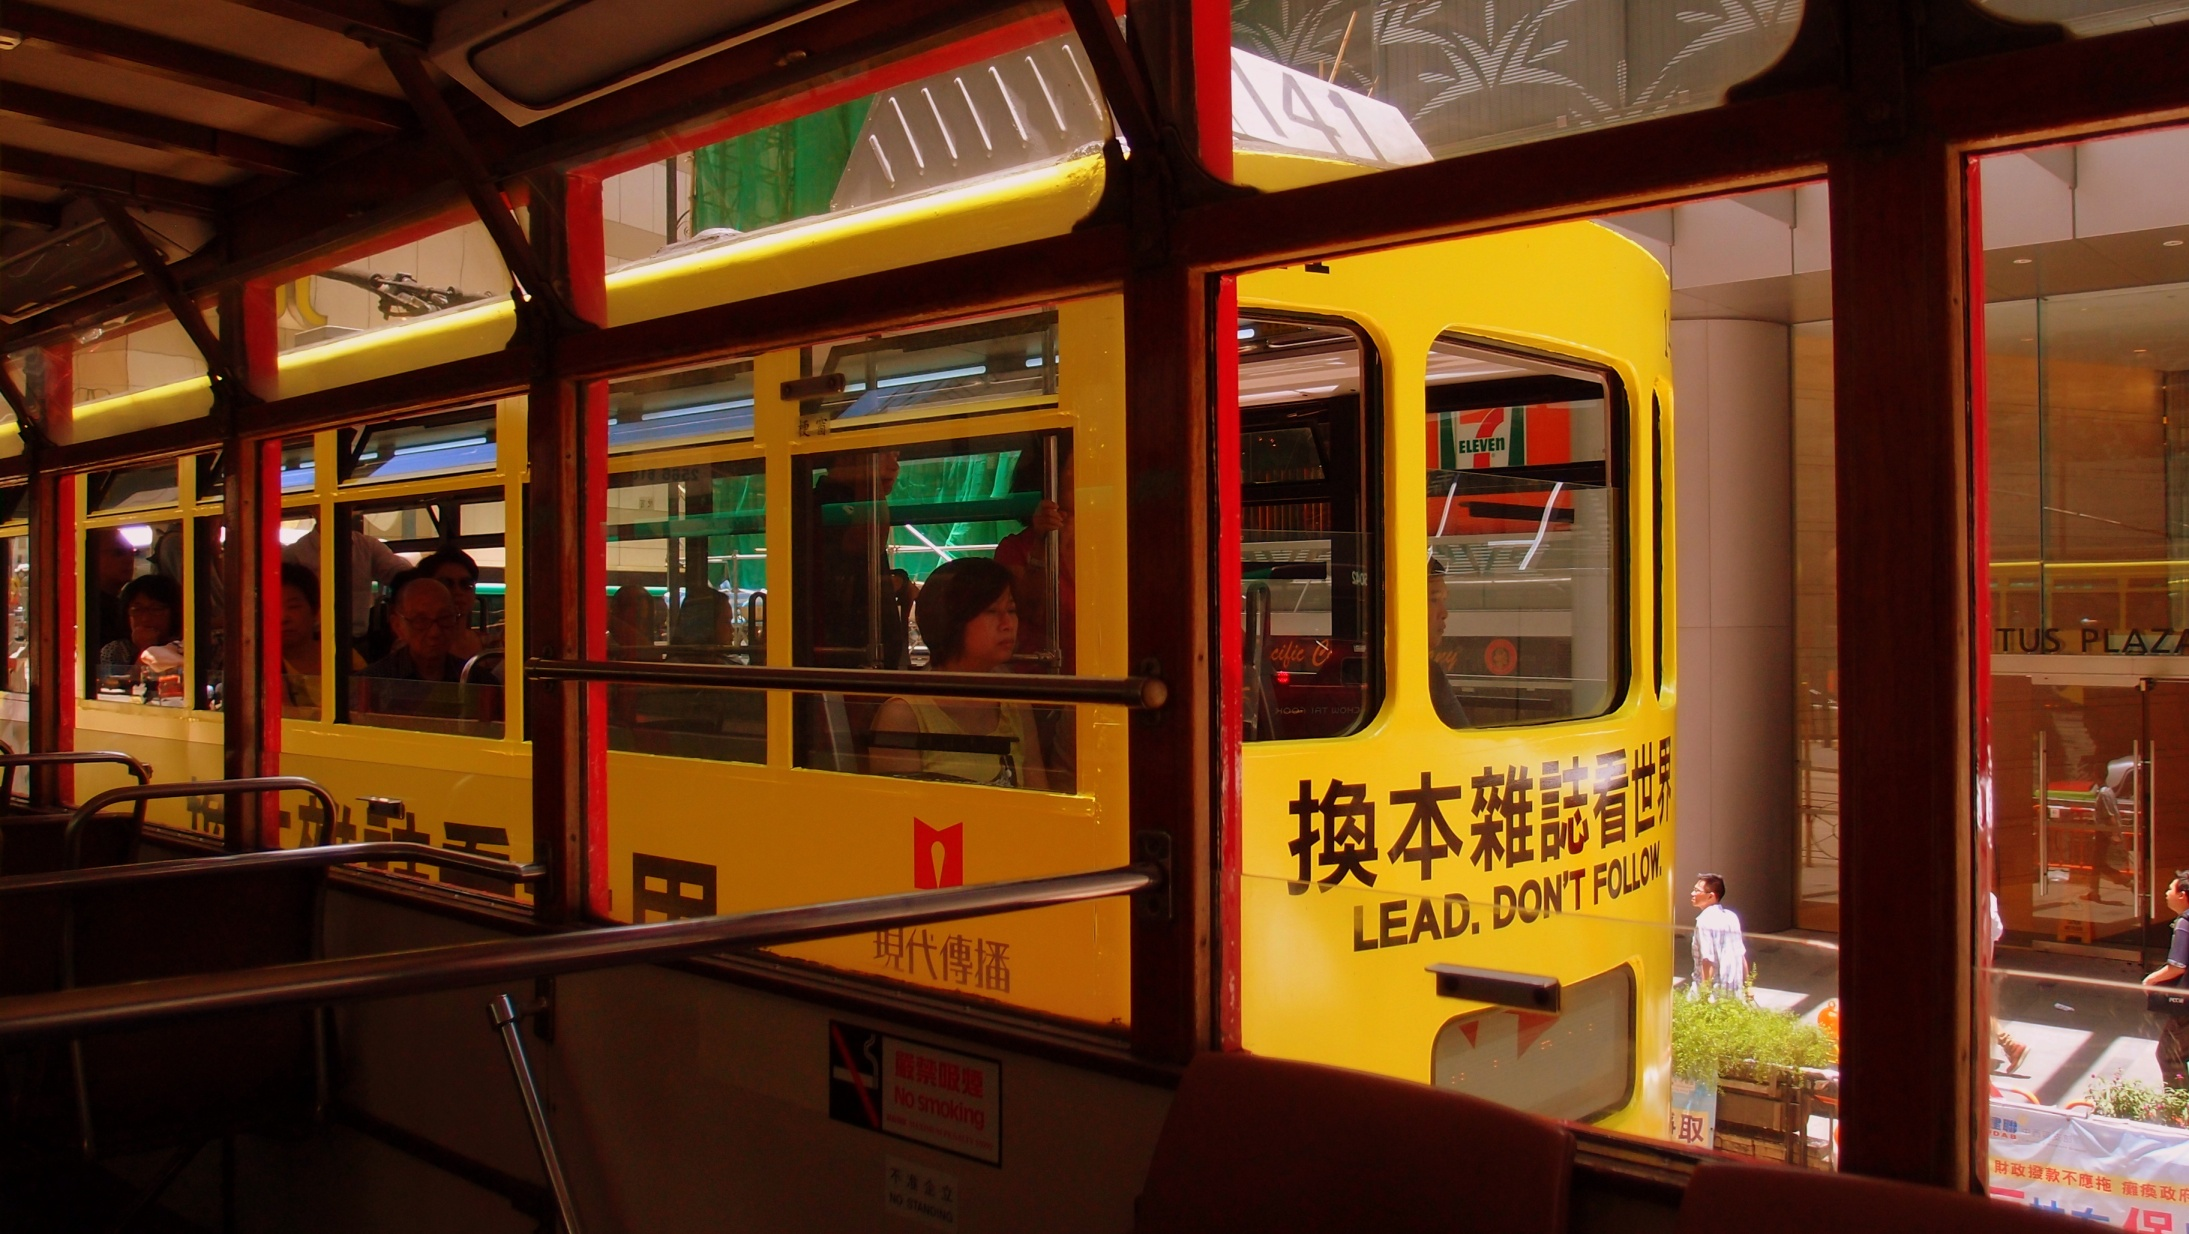 You can get some great shots riding the trams